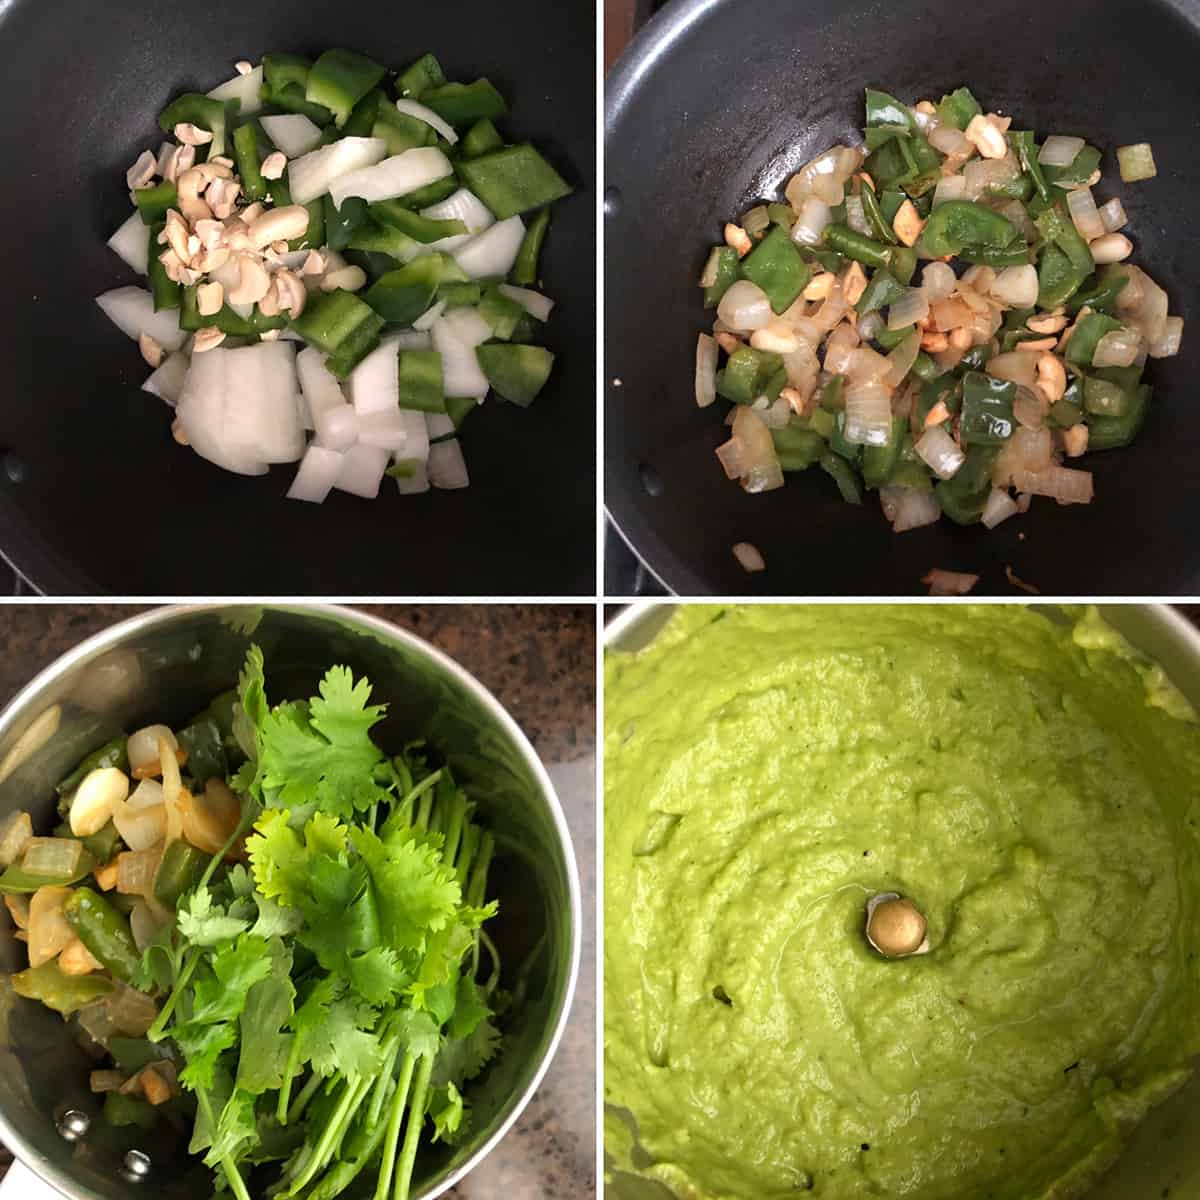 Photos showing the green masala ingredients being sauteed and ground to a paste